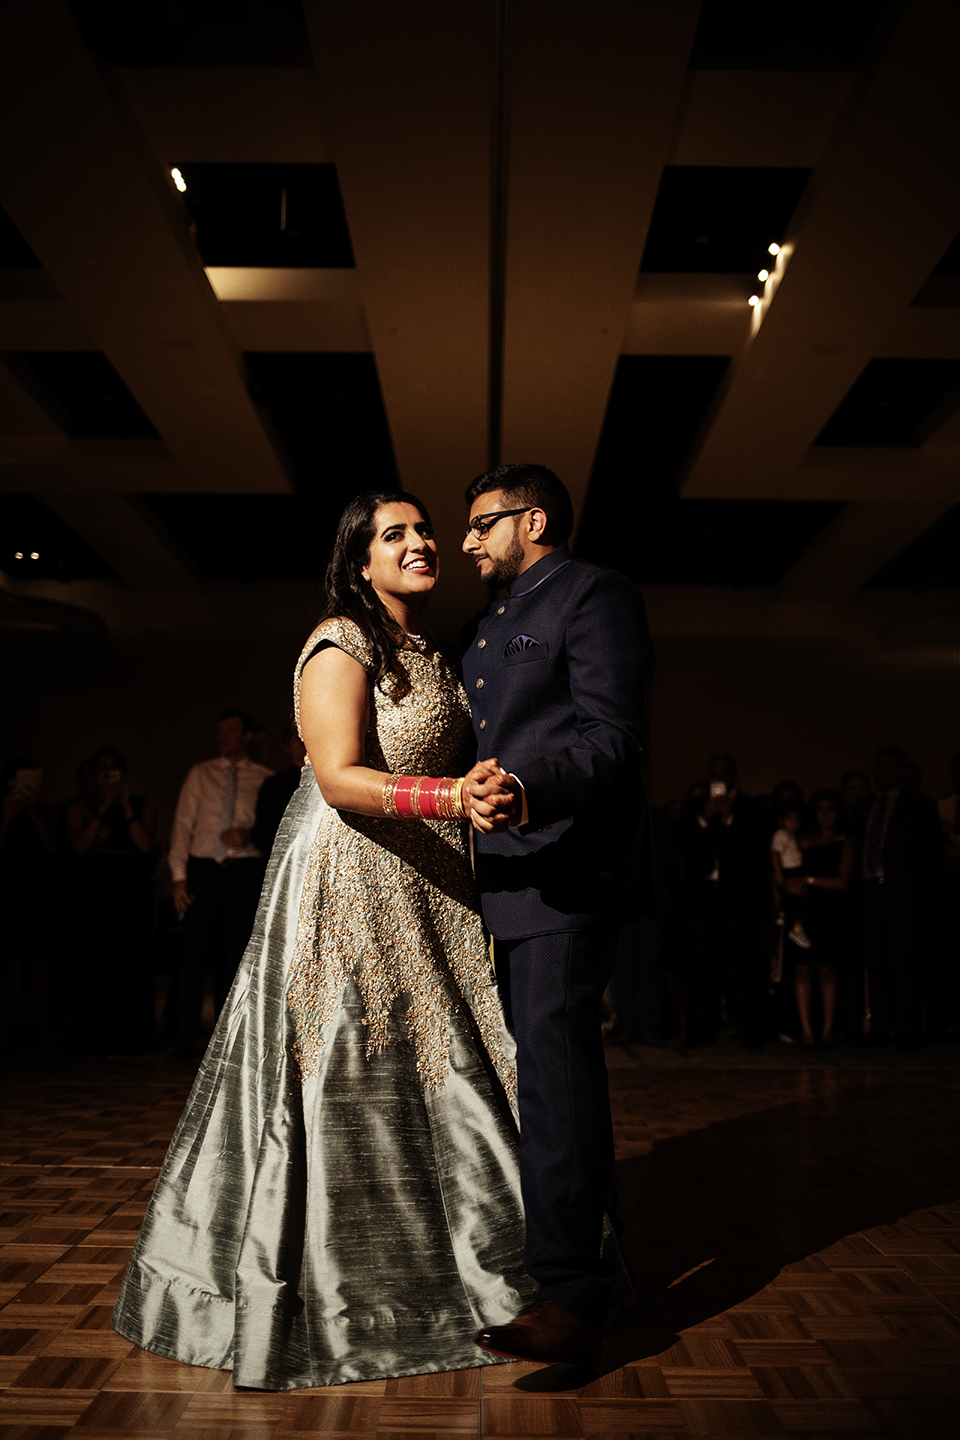 Minneapolis Wedding Photos | Photography by Photogen Inc. | Eliesa Johnson | Luxury Wedding Photography Based in Minnesota